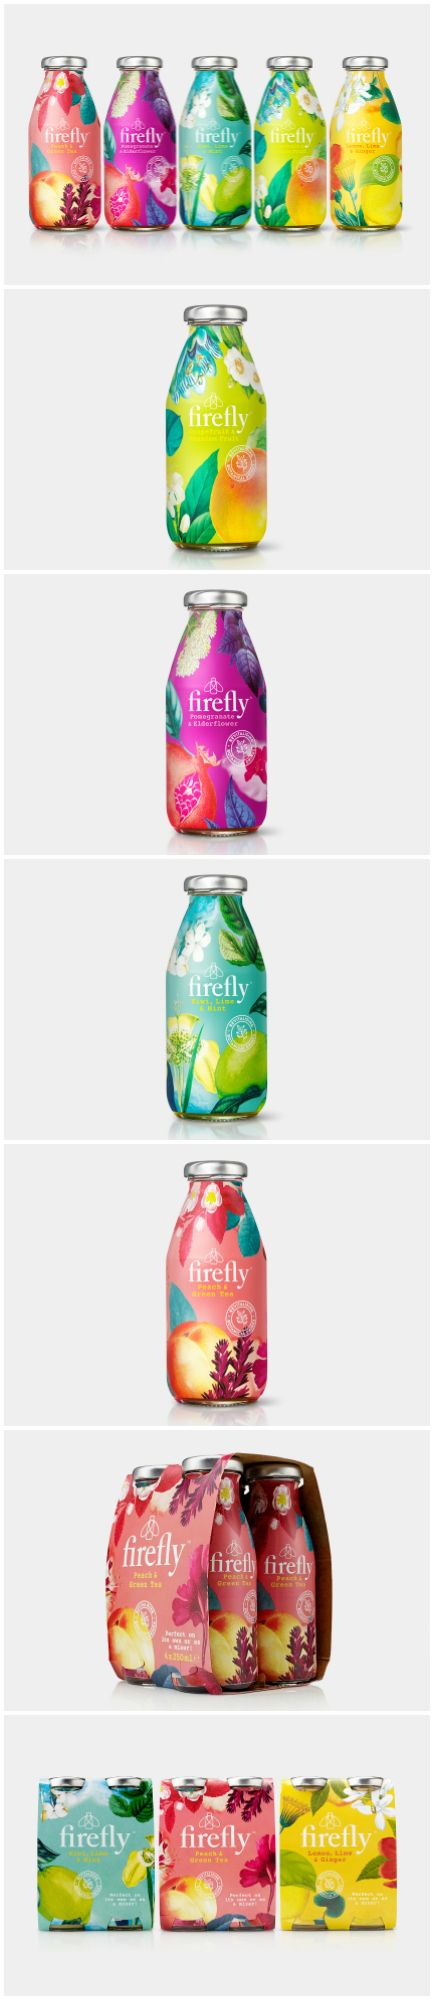 B&B Studio Delivers Botanical-Led Rebrand for Firefly Core Range Design Agency: B&B studio Brand / Project Name: Firefly Location: United Kingdom Market Country: Multiple Countries Category: #Beverages #Drinks  World Brand & Packaging Design Society